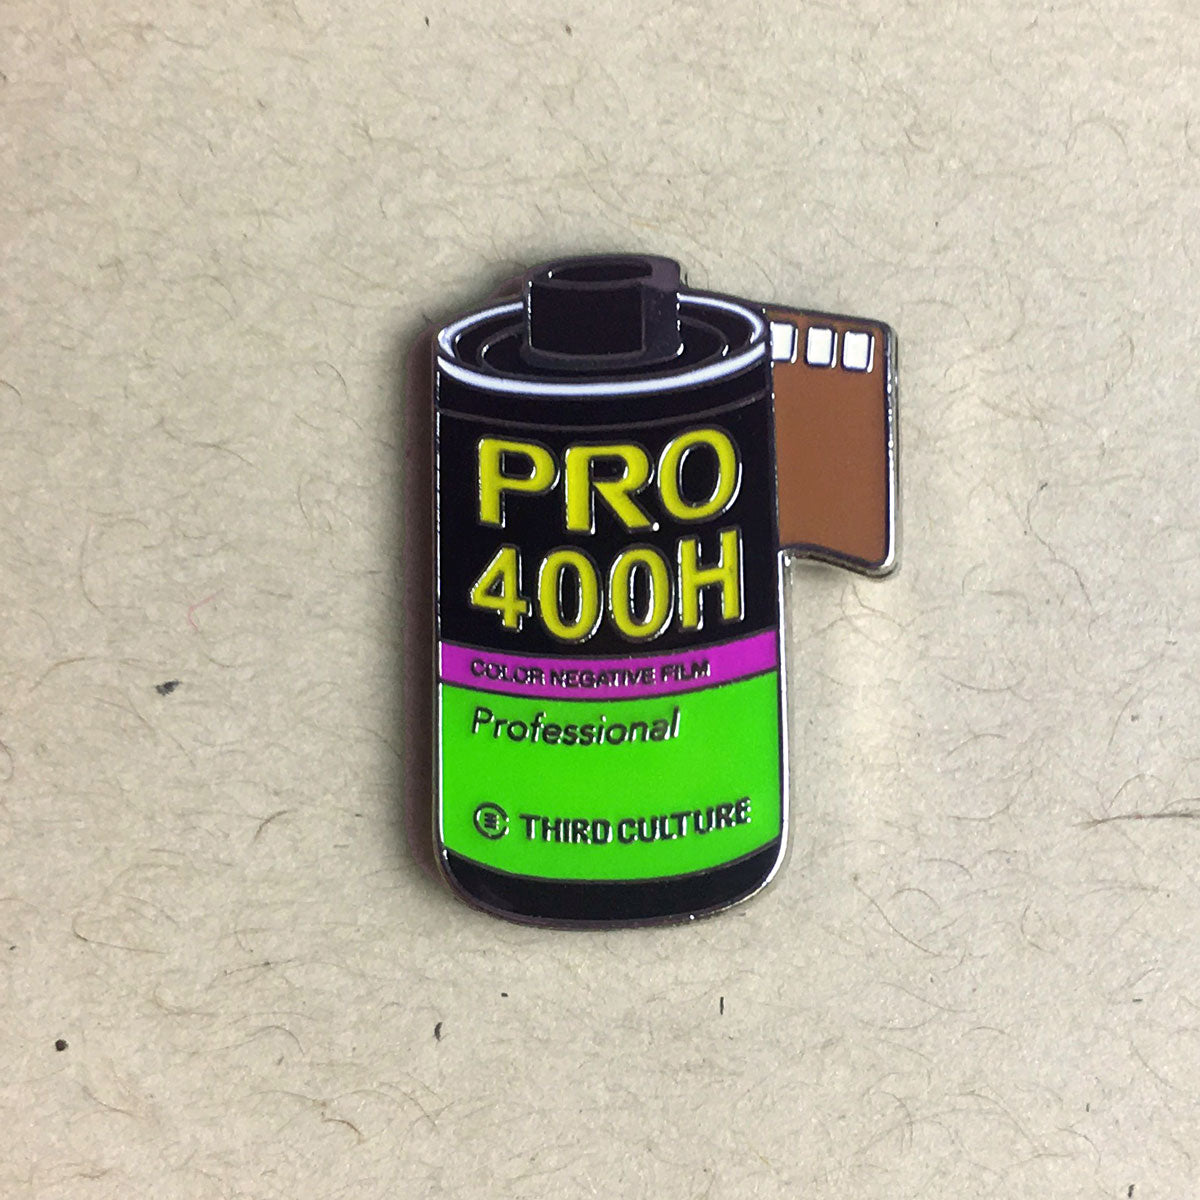 35mm Fuji 400H Lapel Pin